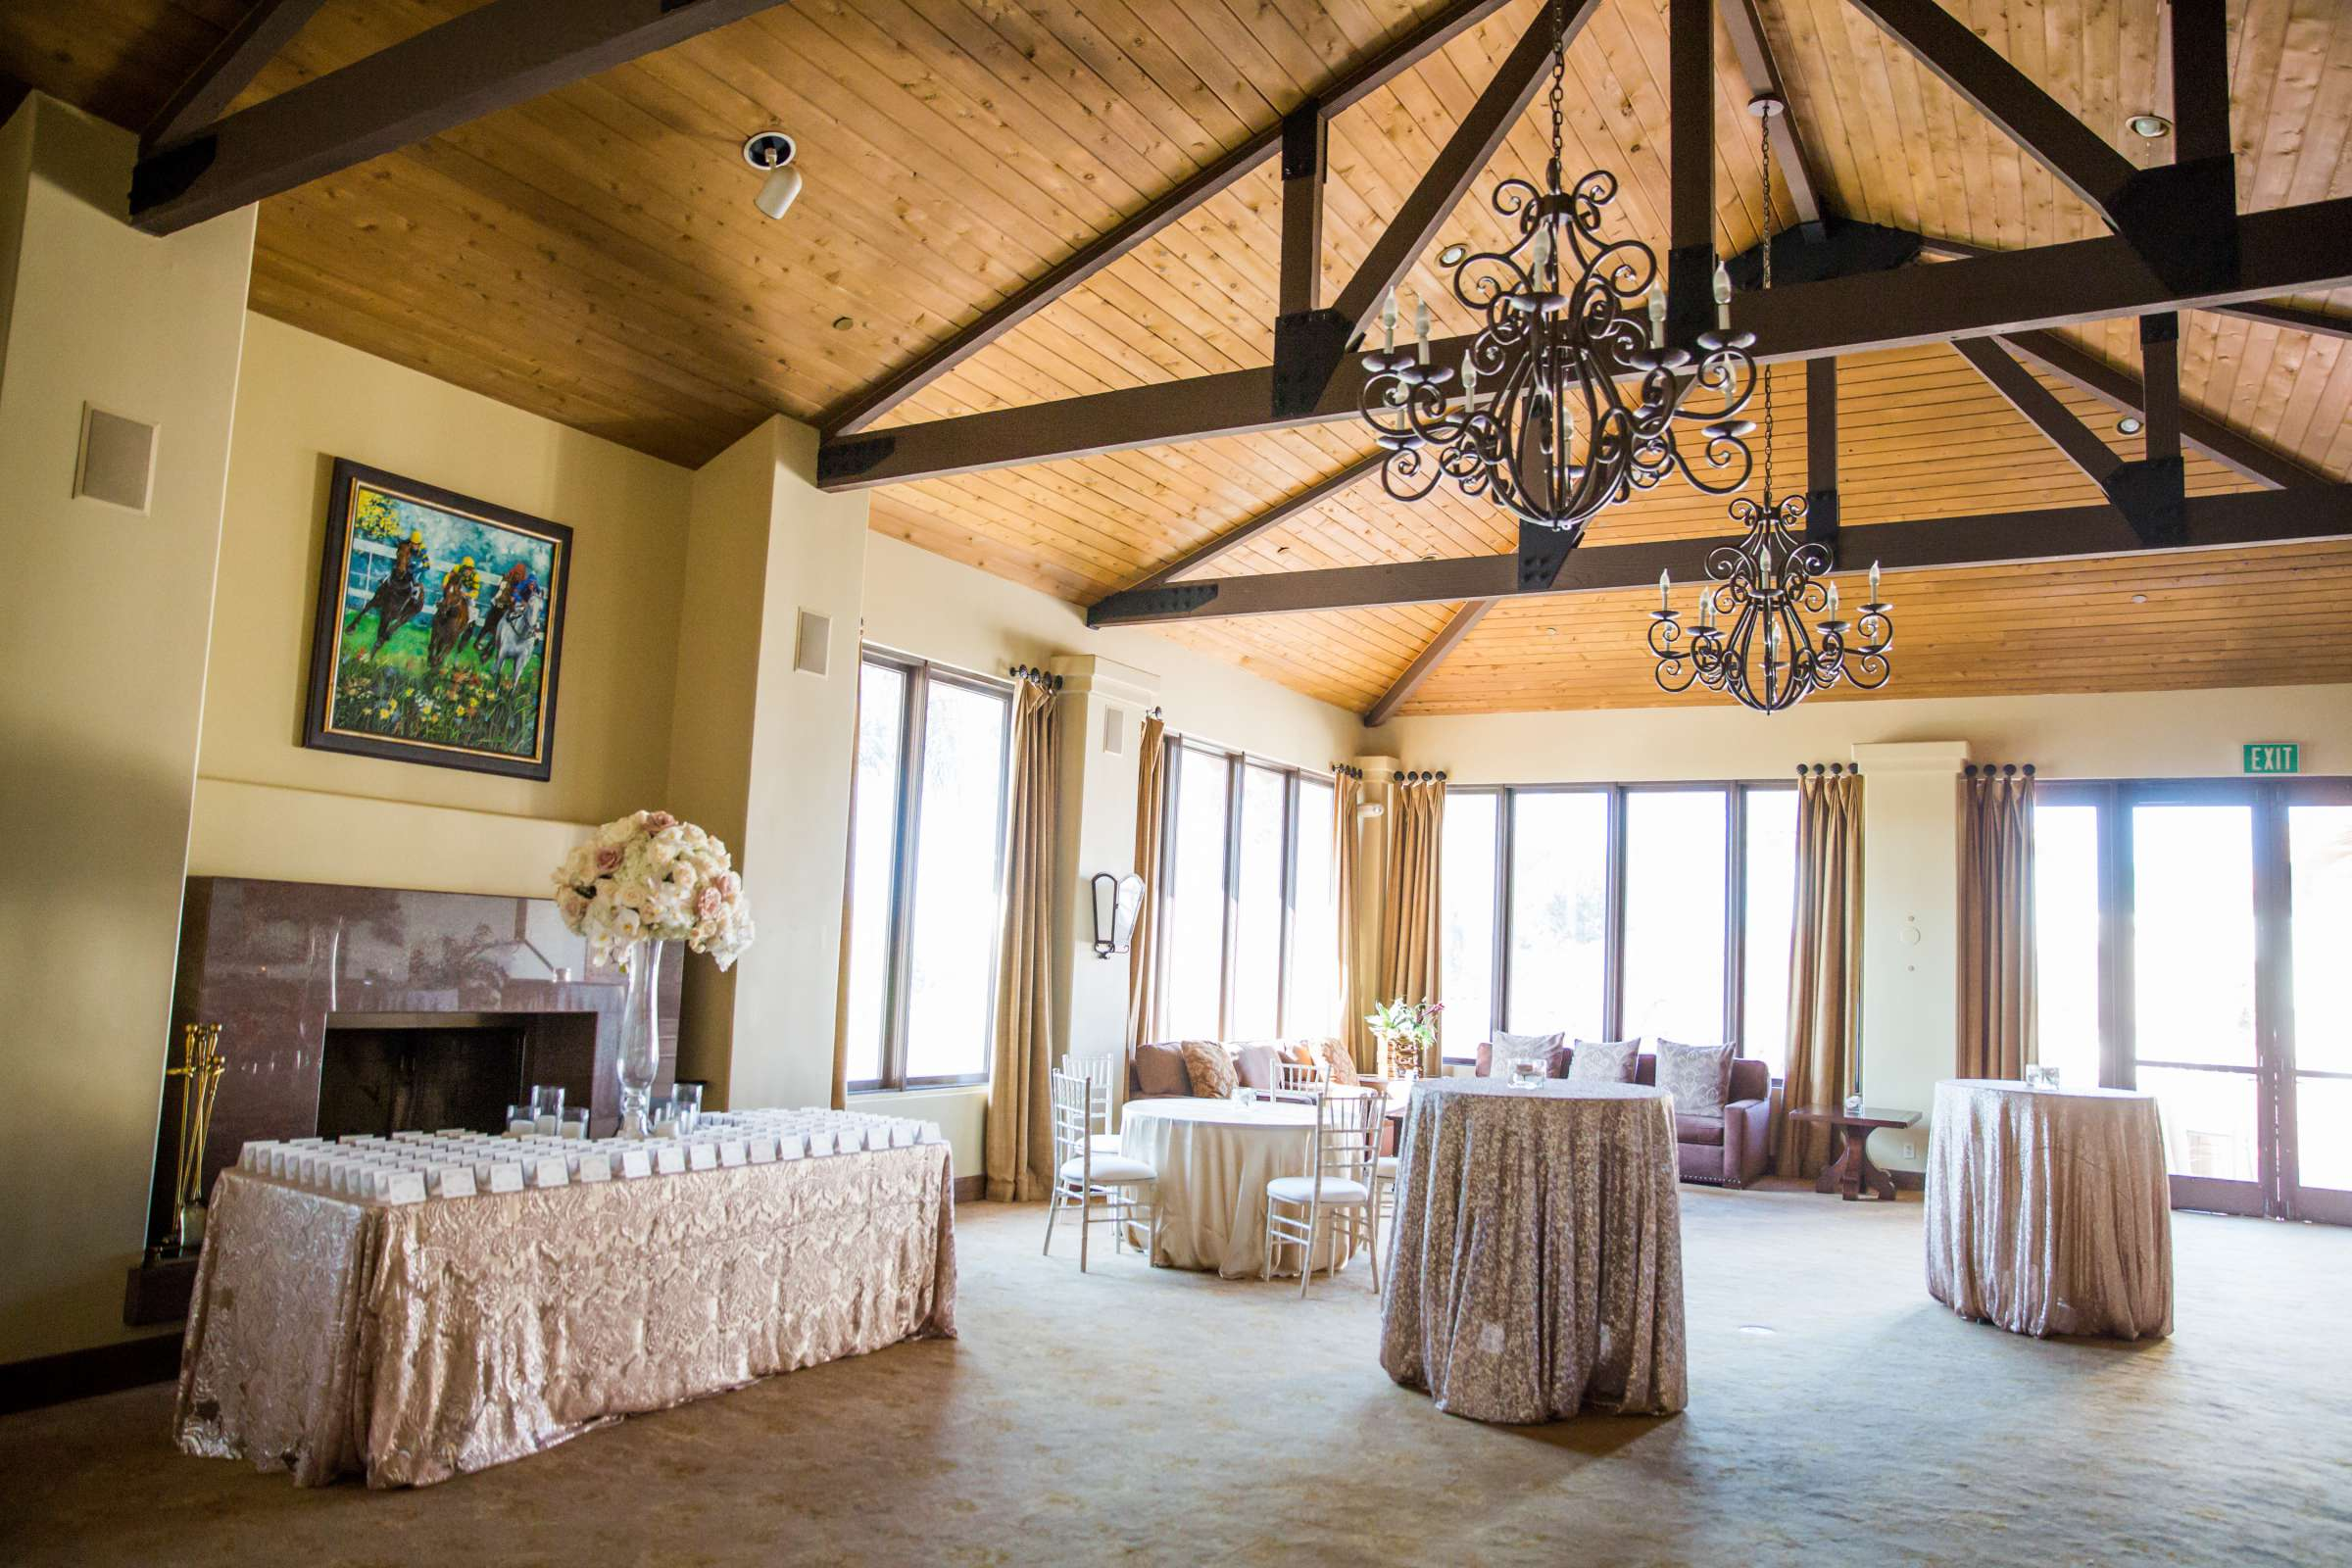 Fairbanks Ranch Country Club Wedding coordinated by Monarch Weddings, Gabriella and Kyle Wedding Photo #119 by True Photography